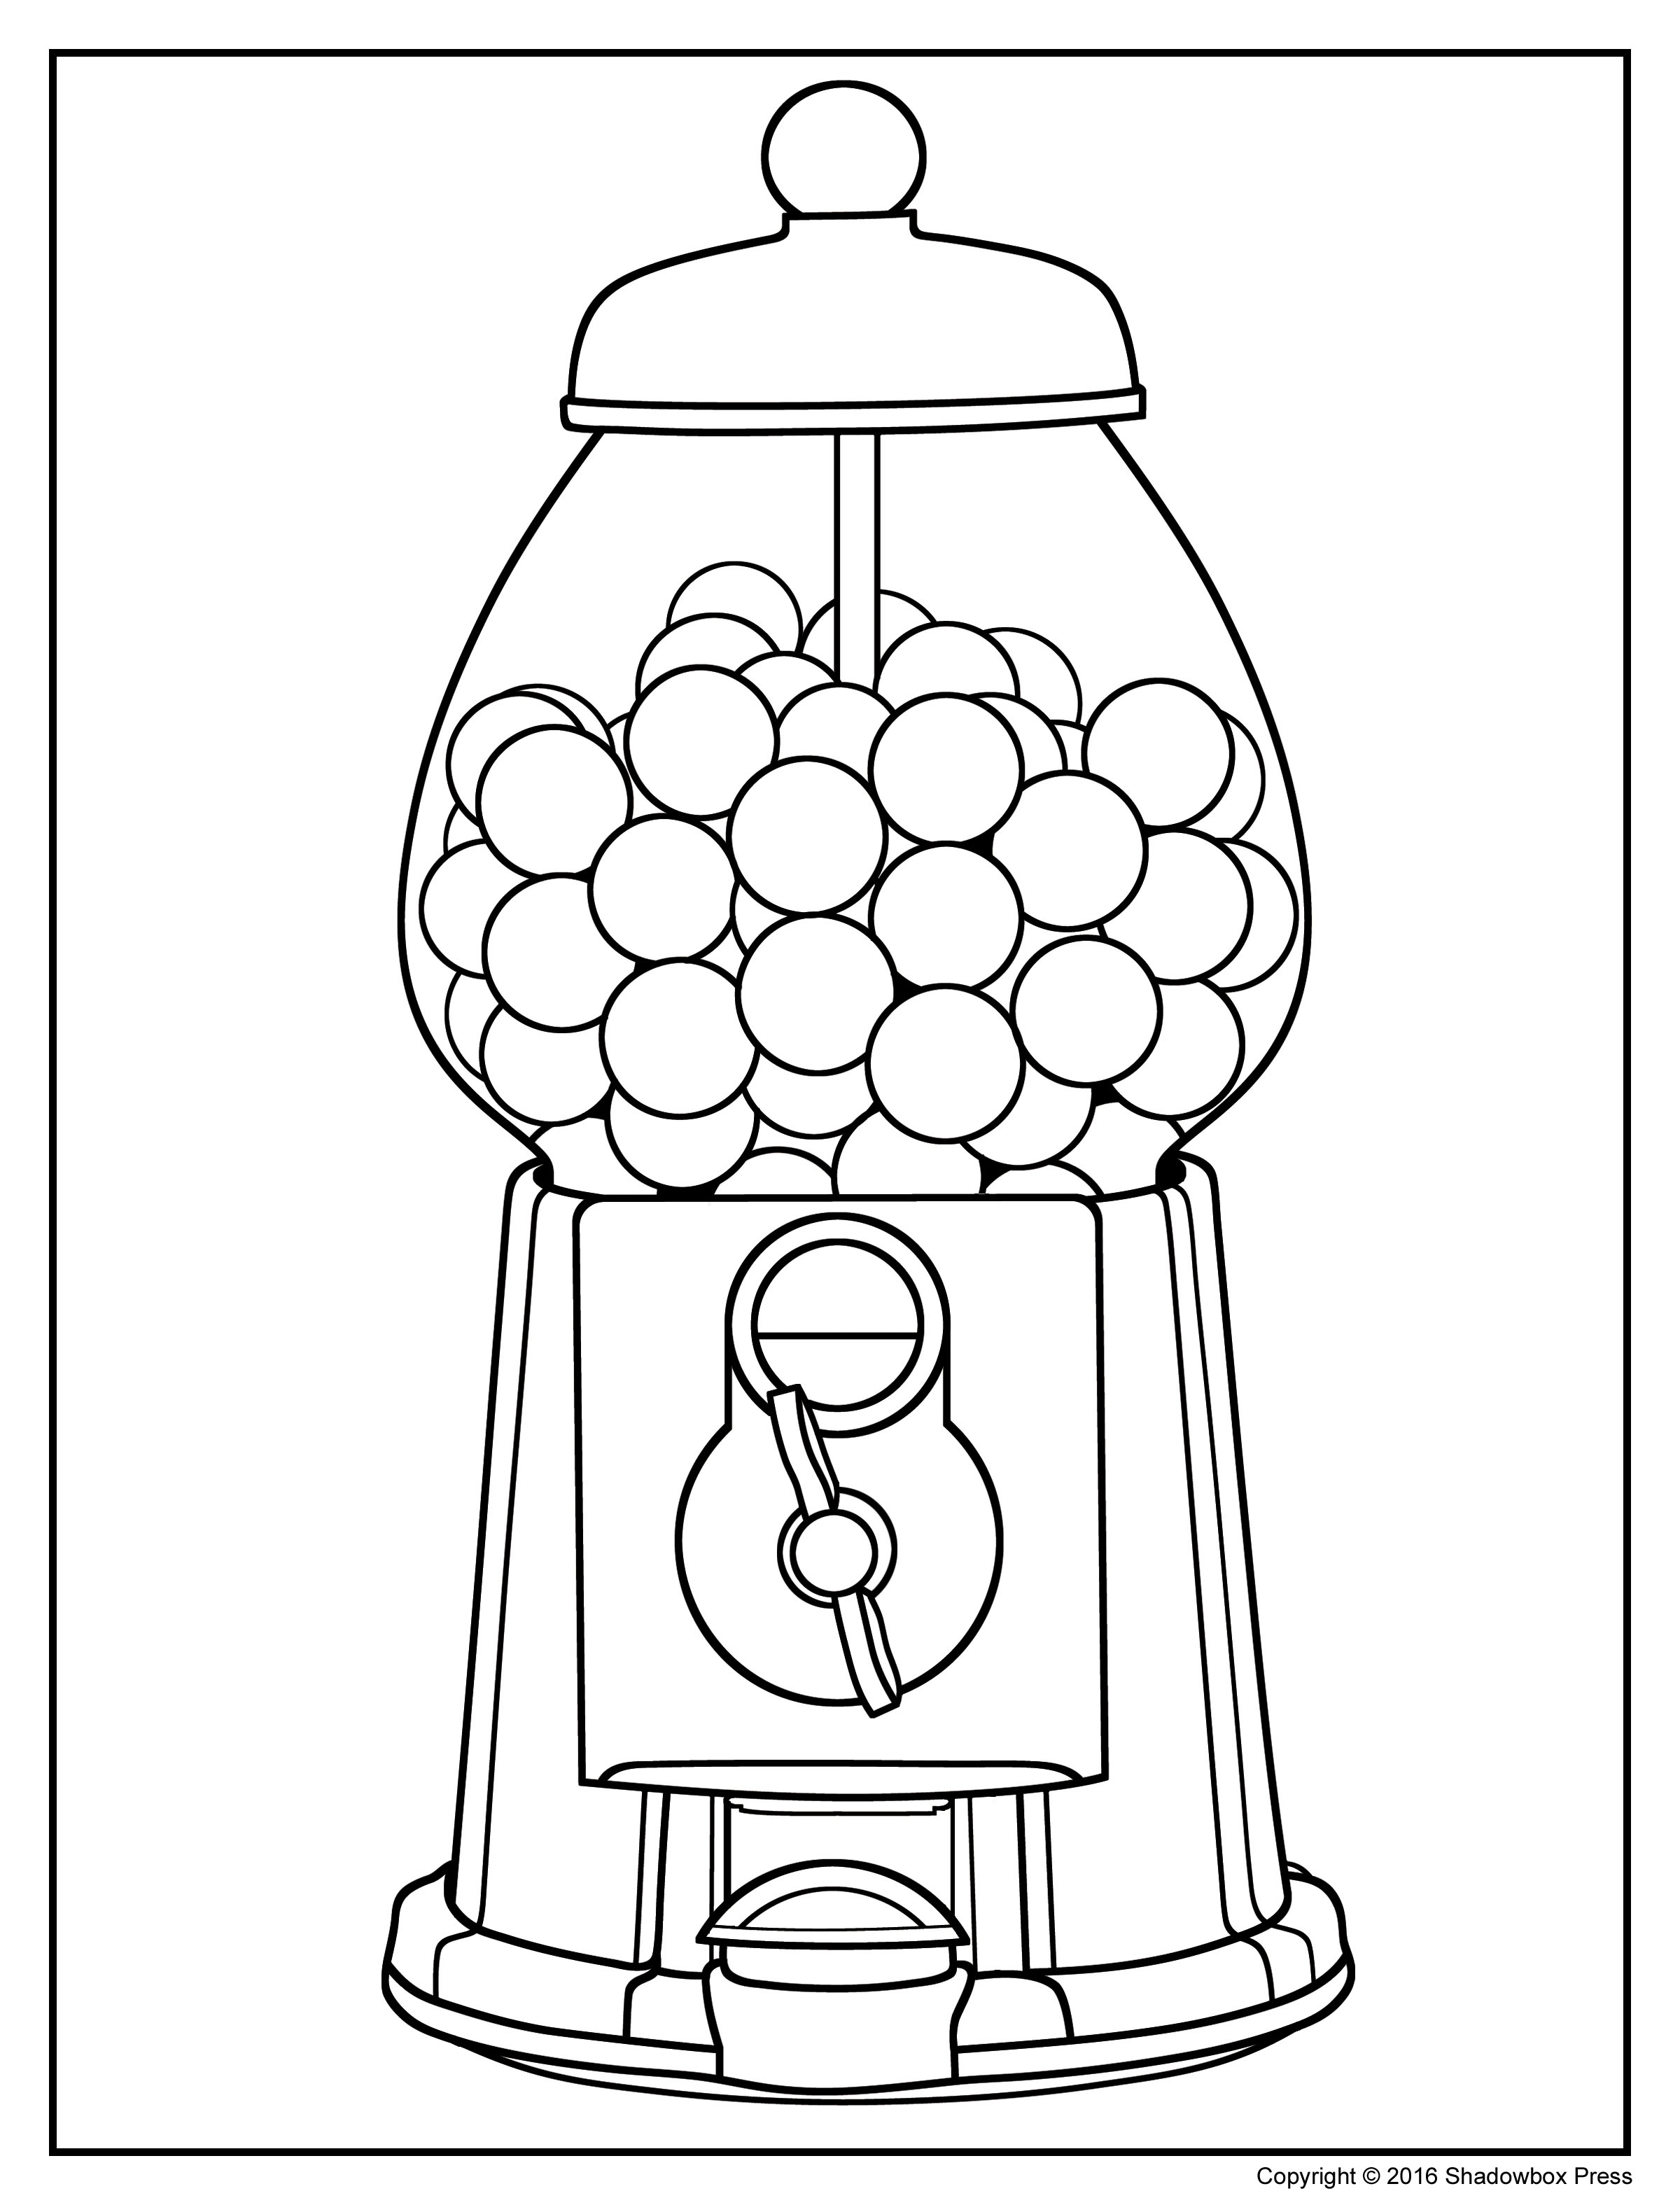 gumball machine coloring page - to print simple machines coloring pages 96 with additional free colouring pages with simple machines coloring pages